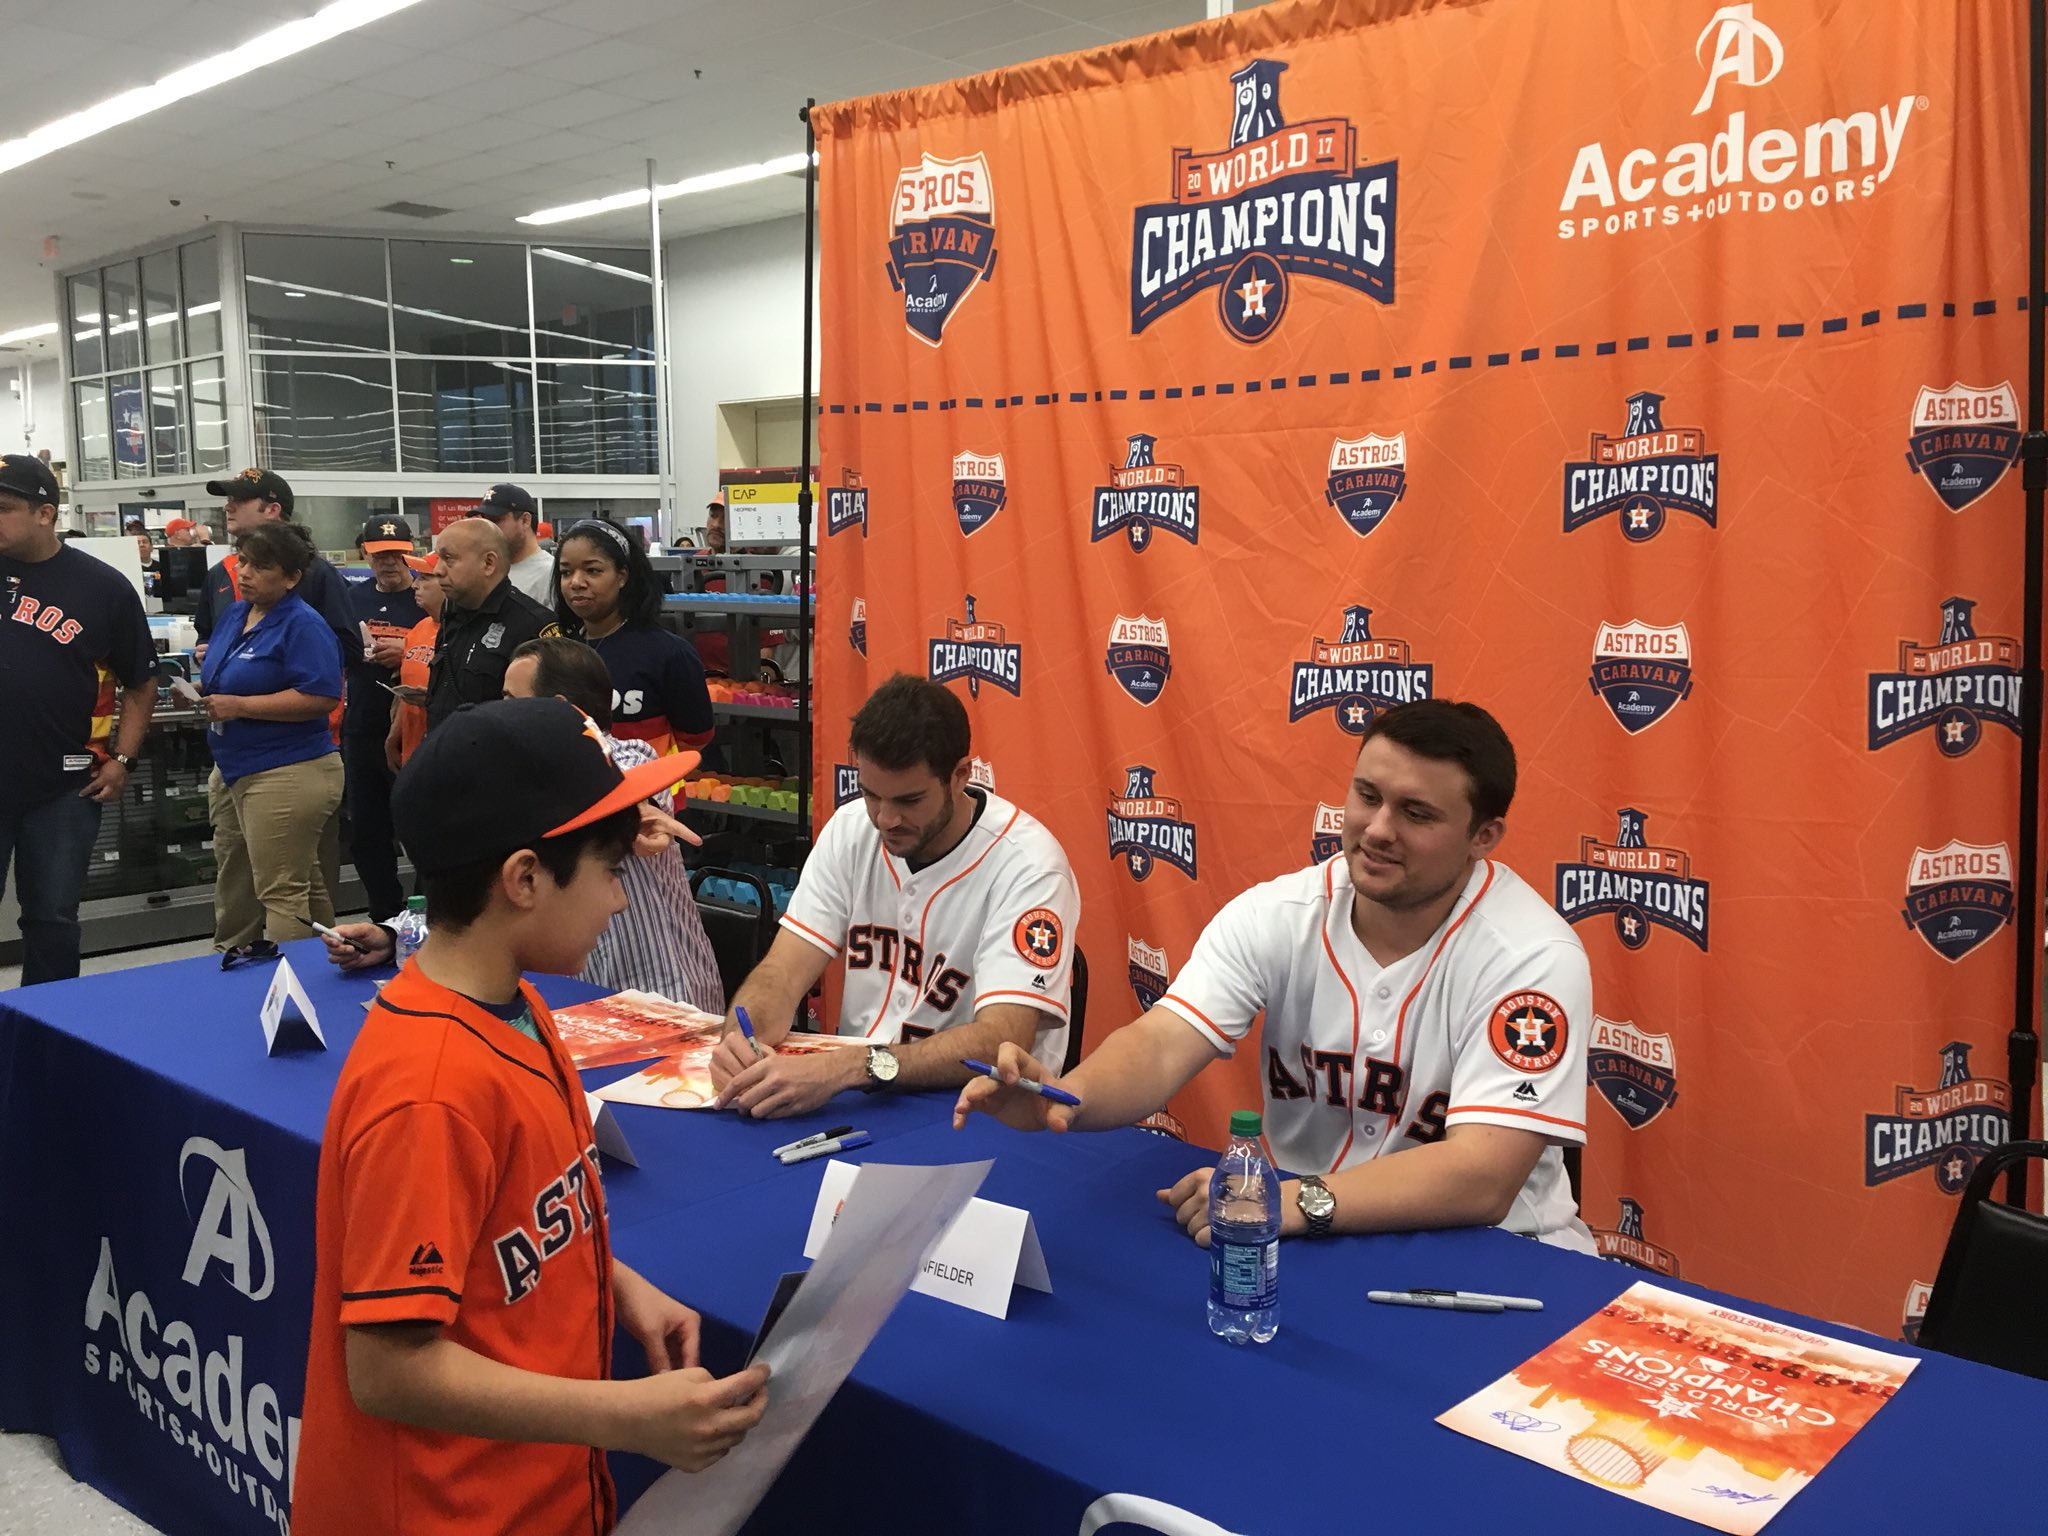 This squad stopped by @Academy for an autograph and trophy appearance! ��   #AstrosCaravan�� https://t.co/RyK5sduXq3